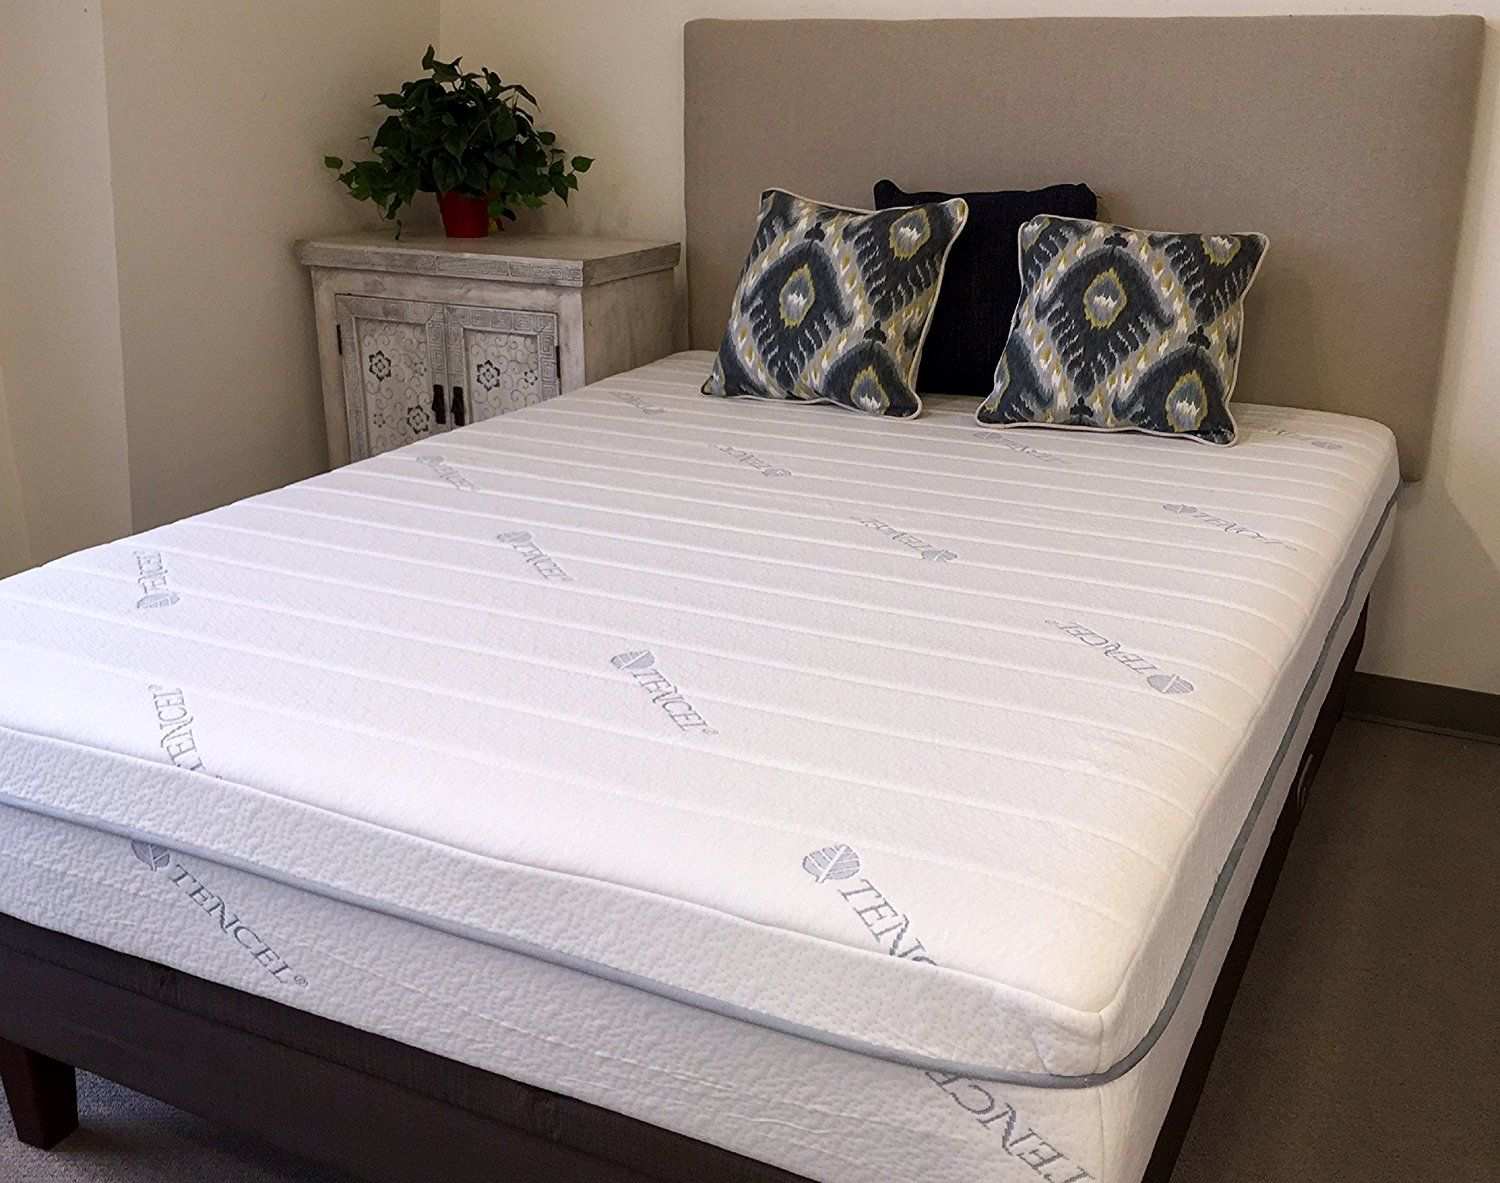 11 Inch Designed To Sleep Tencel Infused Memory Foam Mattress Queen To View Further For This Item Visit The Mattress Comfort Mattress Queen Mattress Size